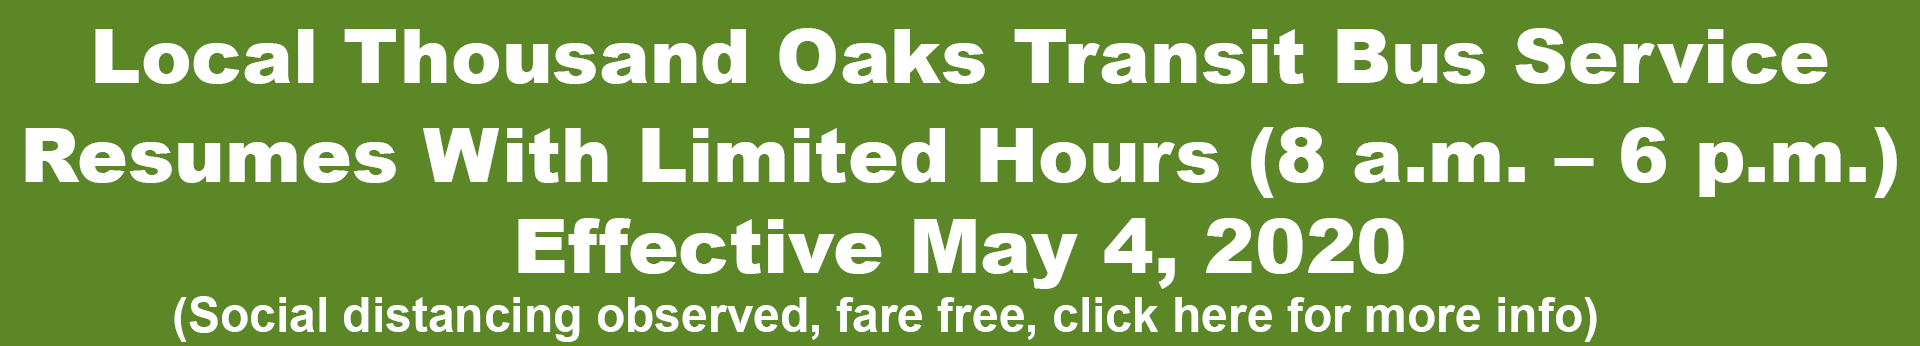 Local Thousand Oaks Transit Bus Service Resumes with Limited Hours (8:00 a.m. - 6:00 p.m.) Effective May 4, 2020. (Social distancing observed, free fares, click here for a PDF with more info).